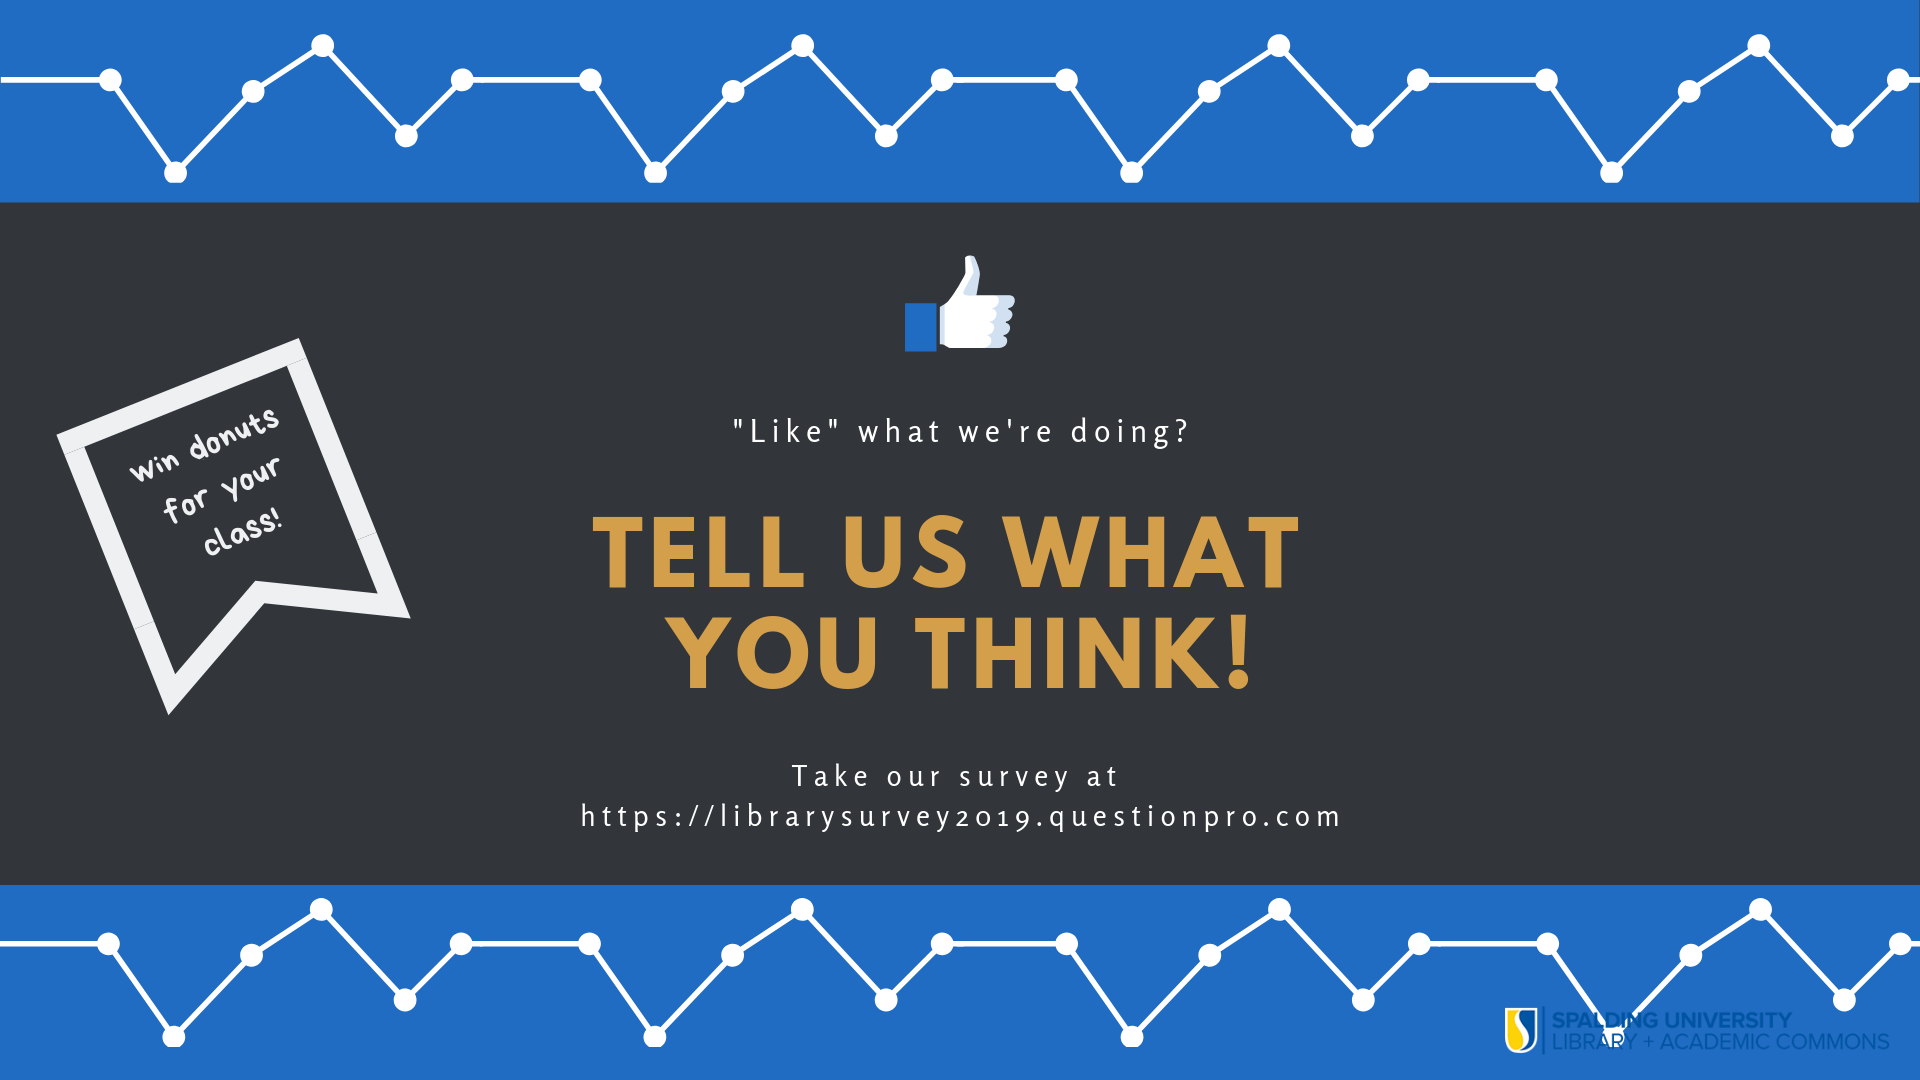 Let us know what you think! Take our survey and enter for a chance to win donuts or bagels for your class